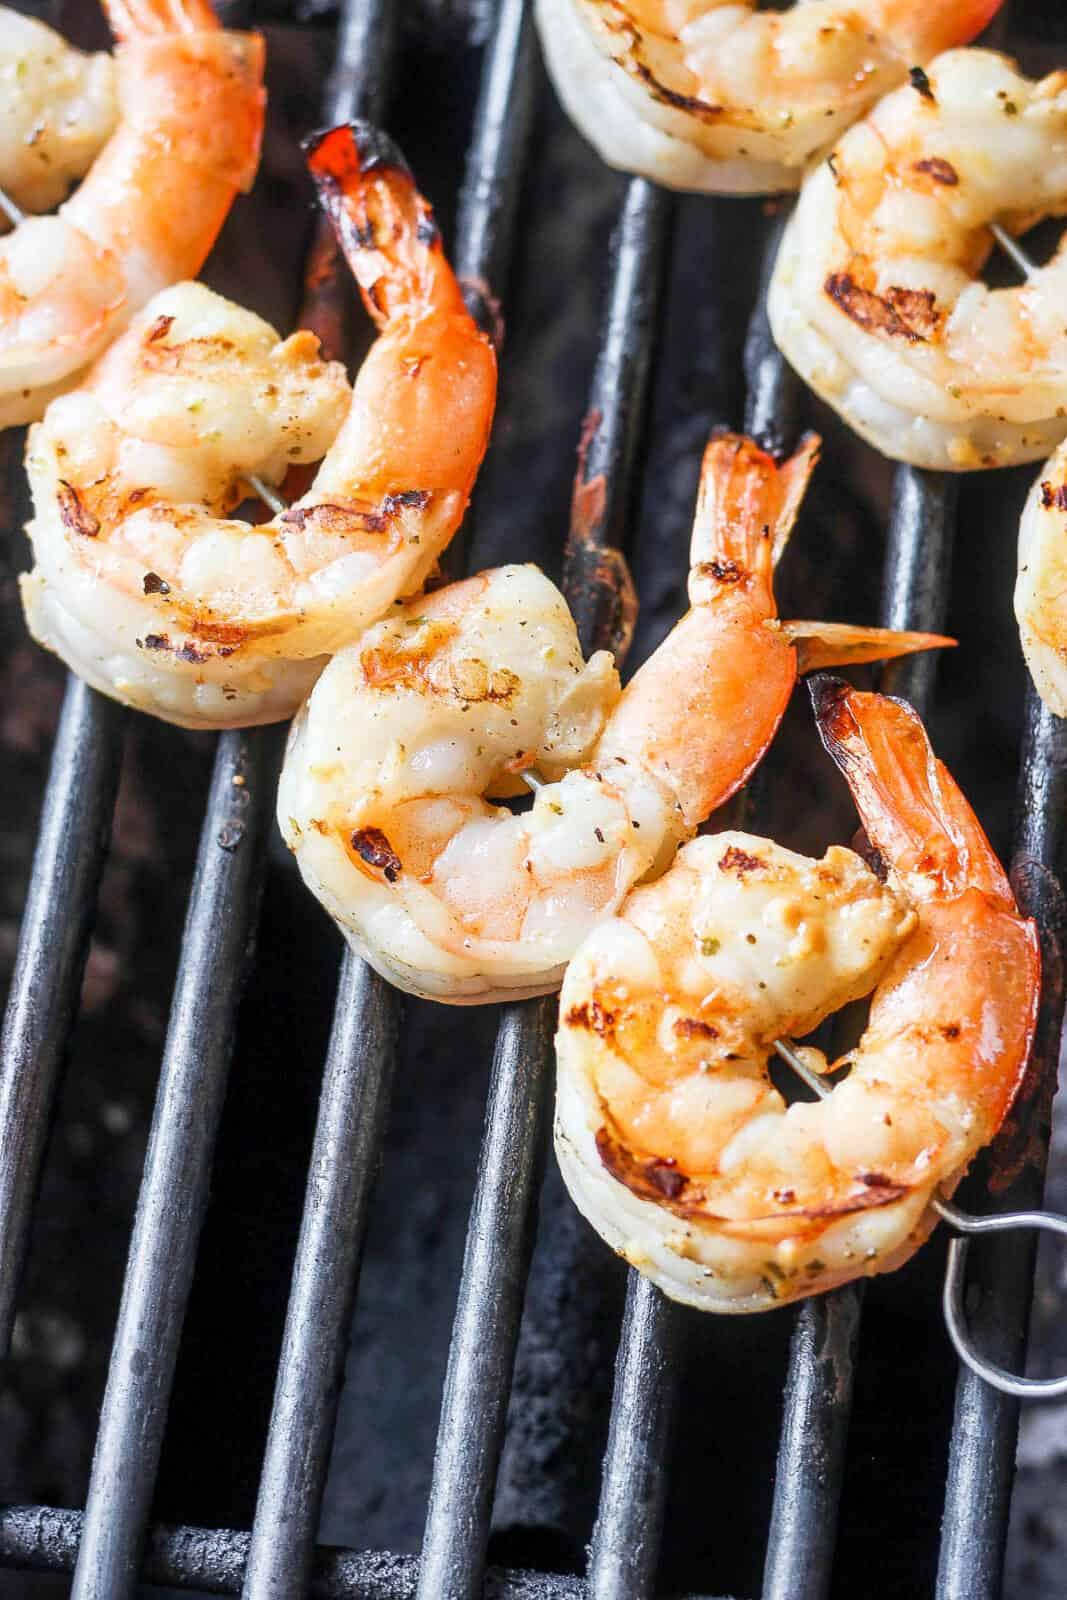 Shrimp skewers on the grill.